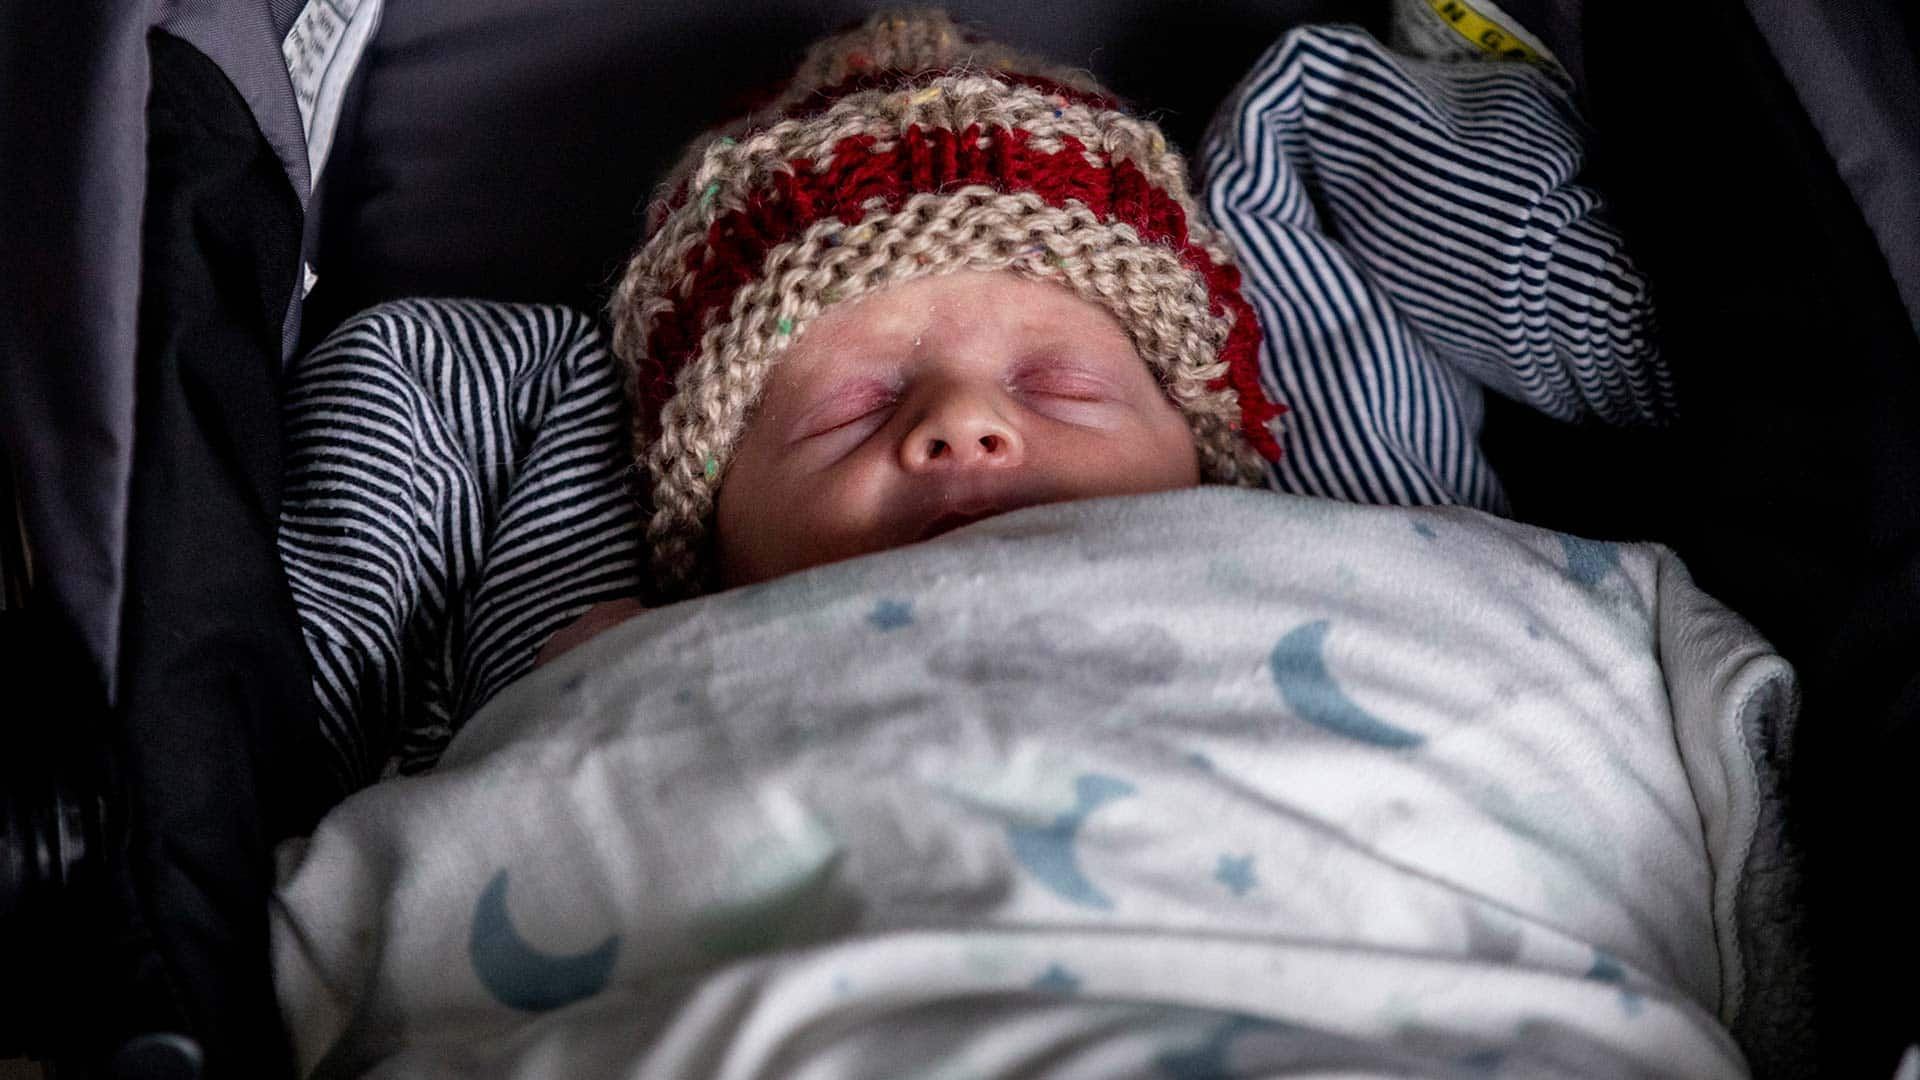 Baby comes home, as B.C. Mum remains in ICU Because of COVID-19 complications thumbnail